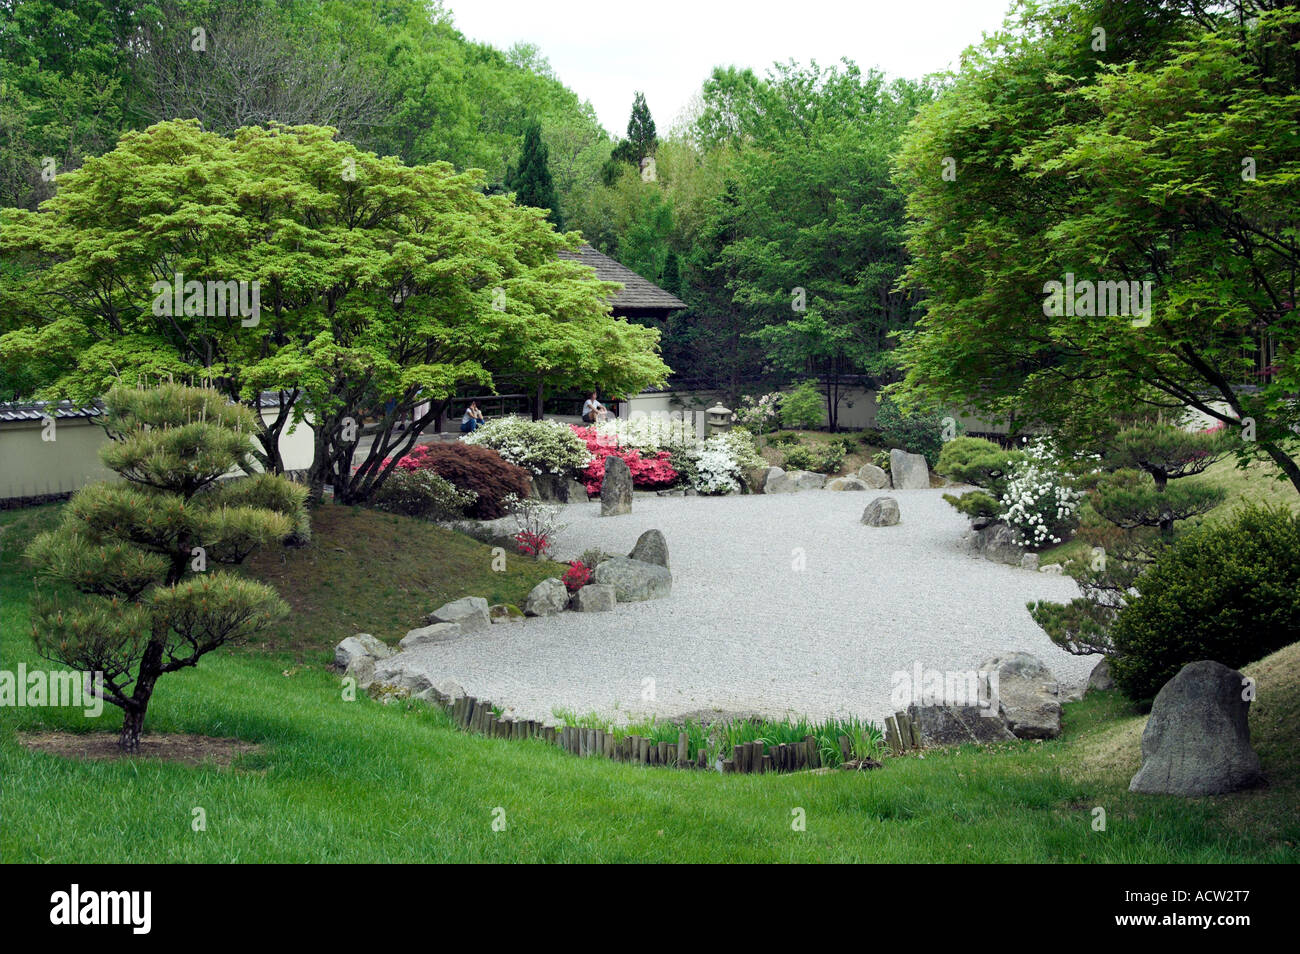 The Japanese Gardens At The Cheekwood Botanical Gardens In